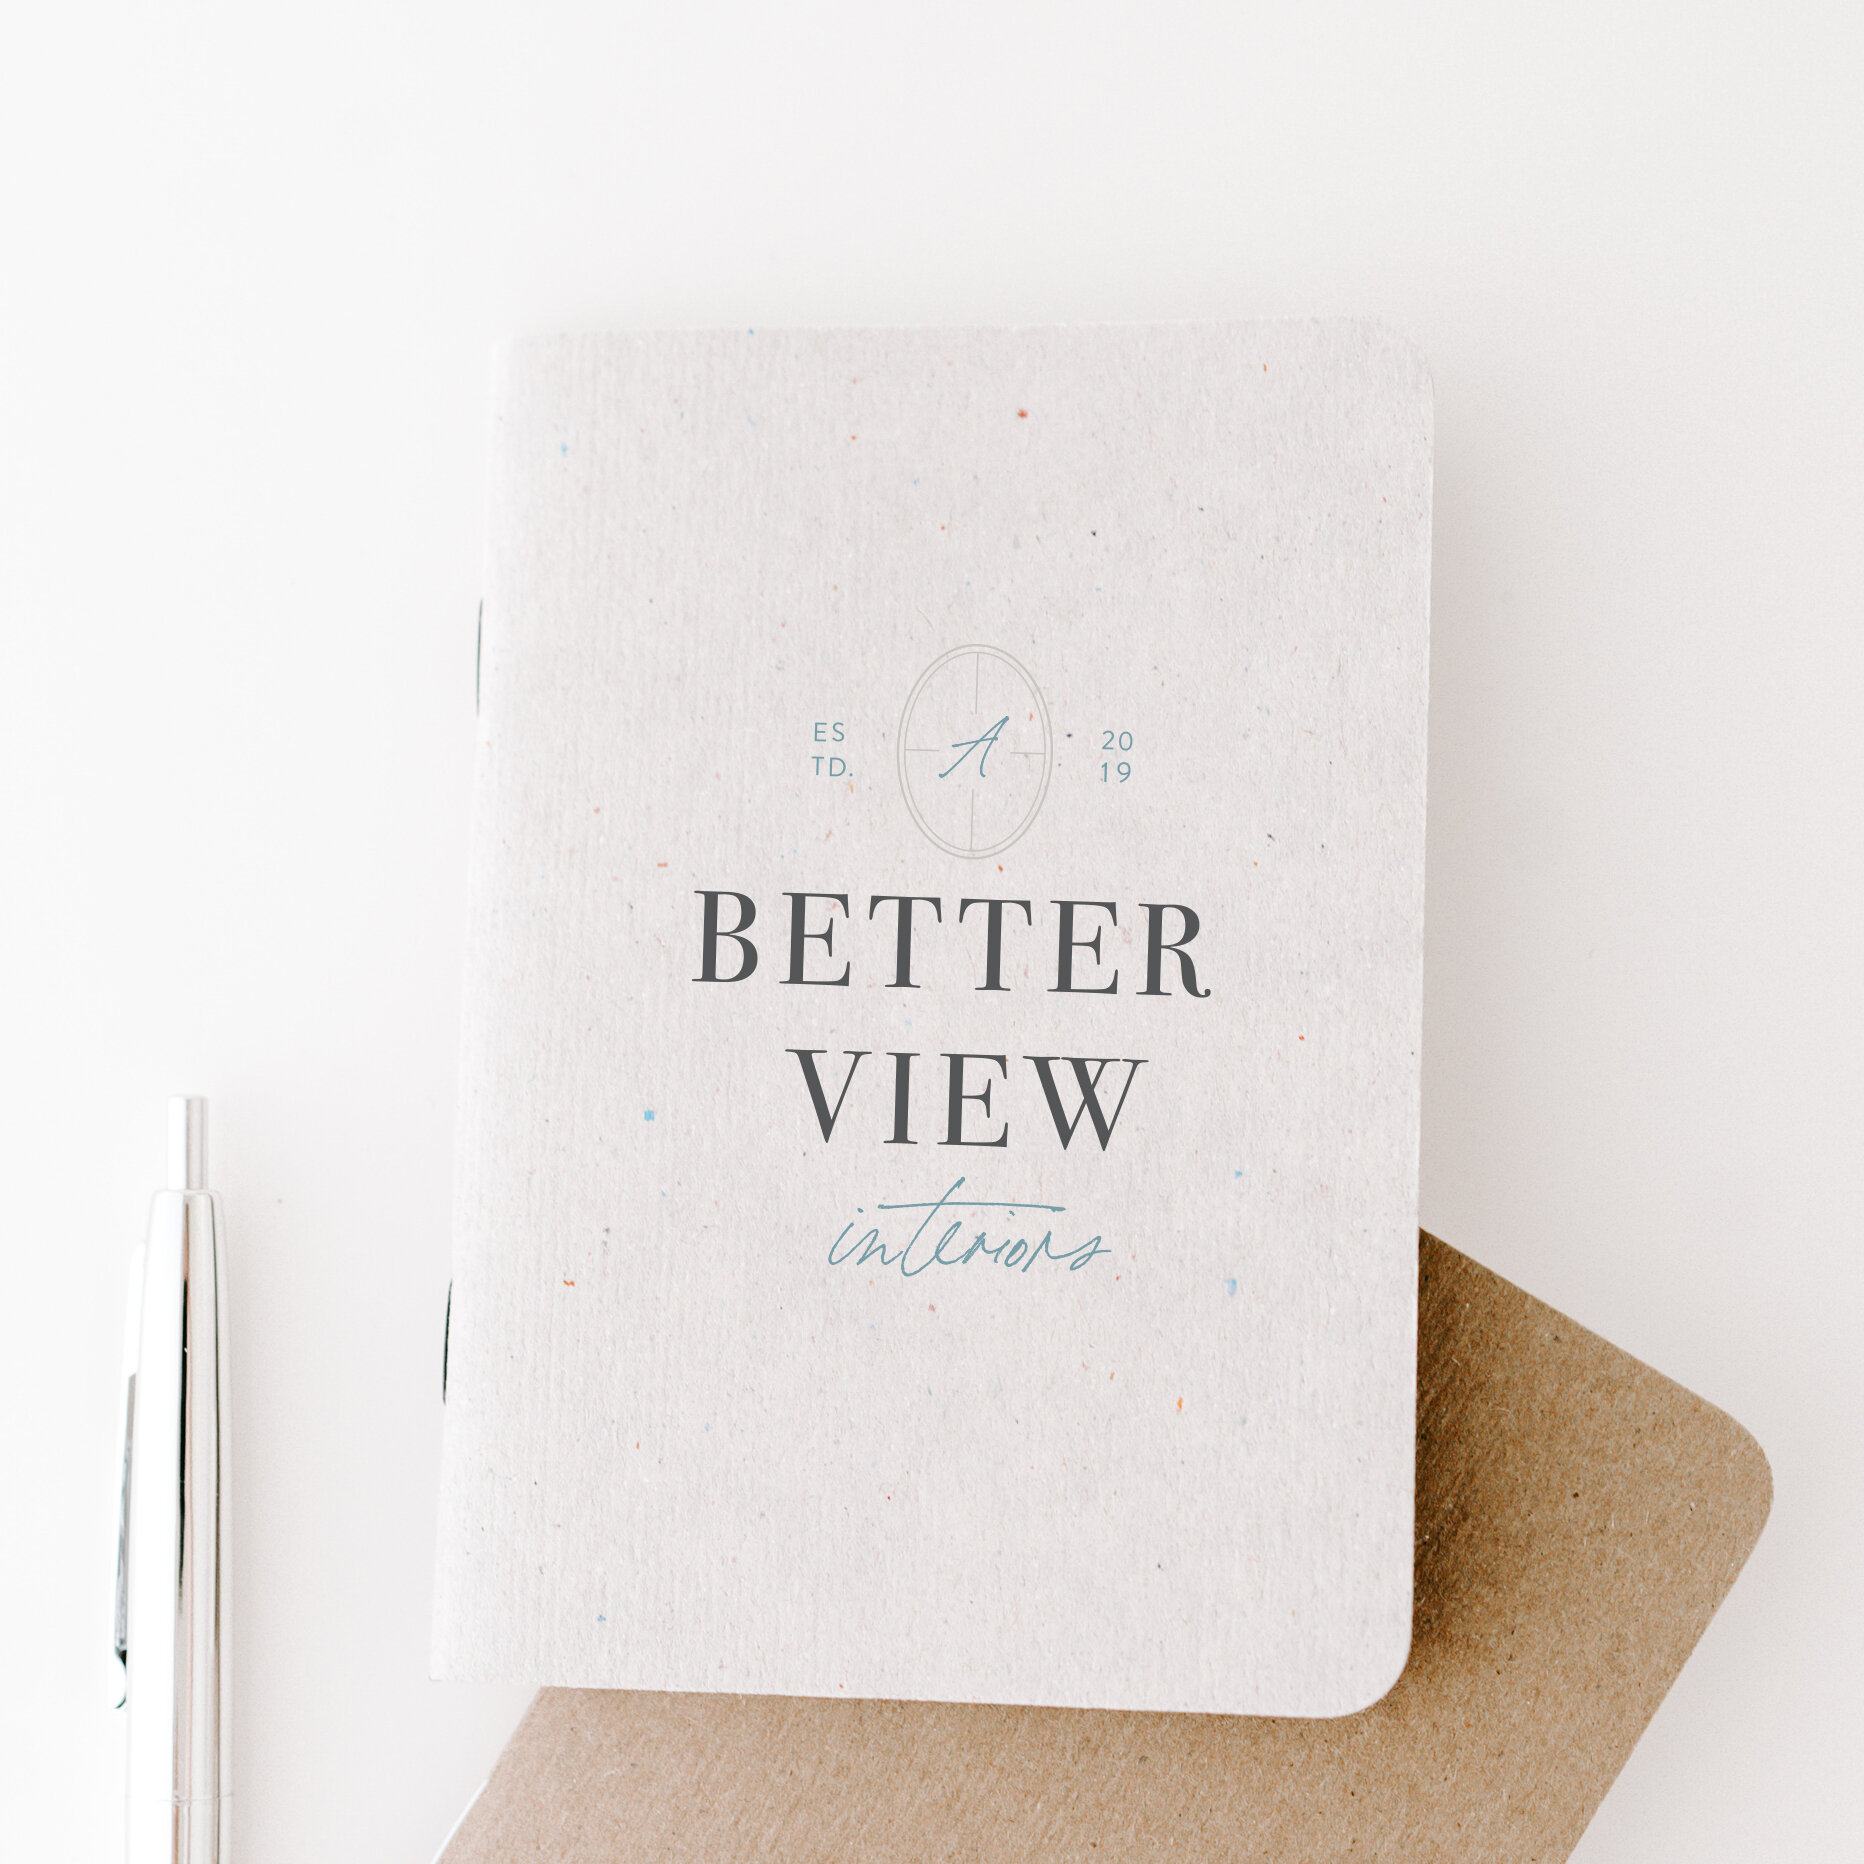 A Better View Interiors | Branding by Jula Paper Co.